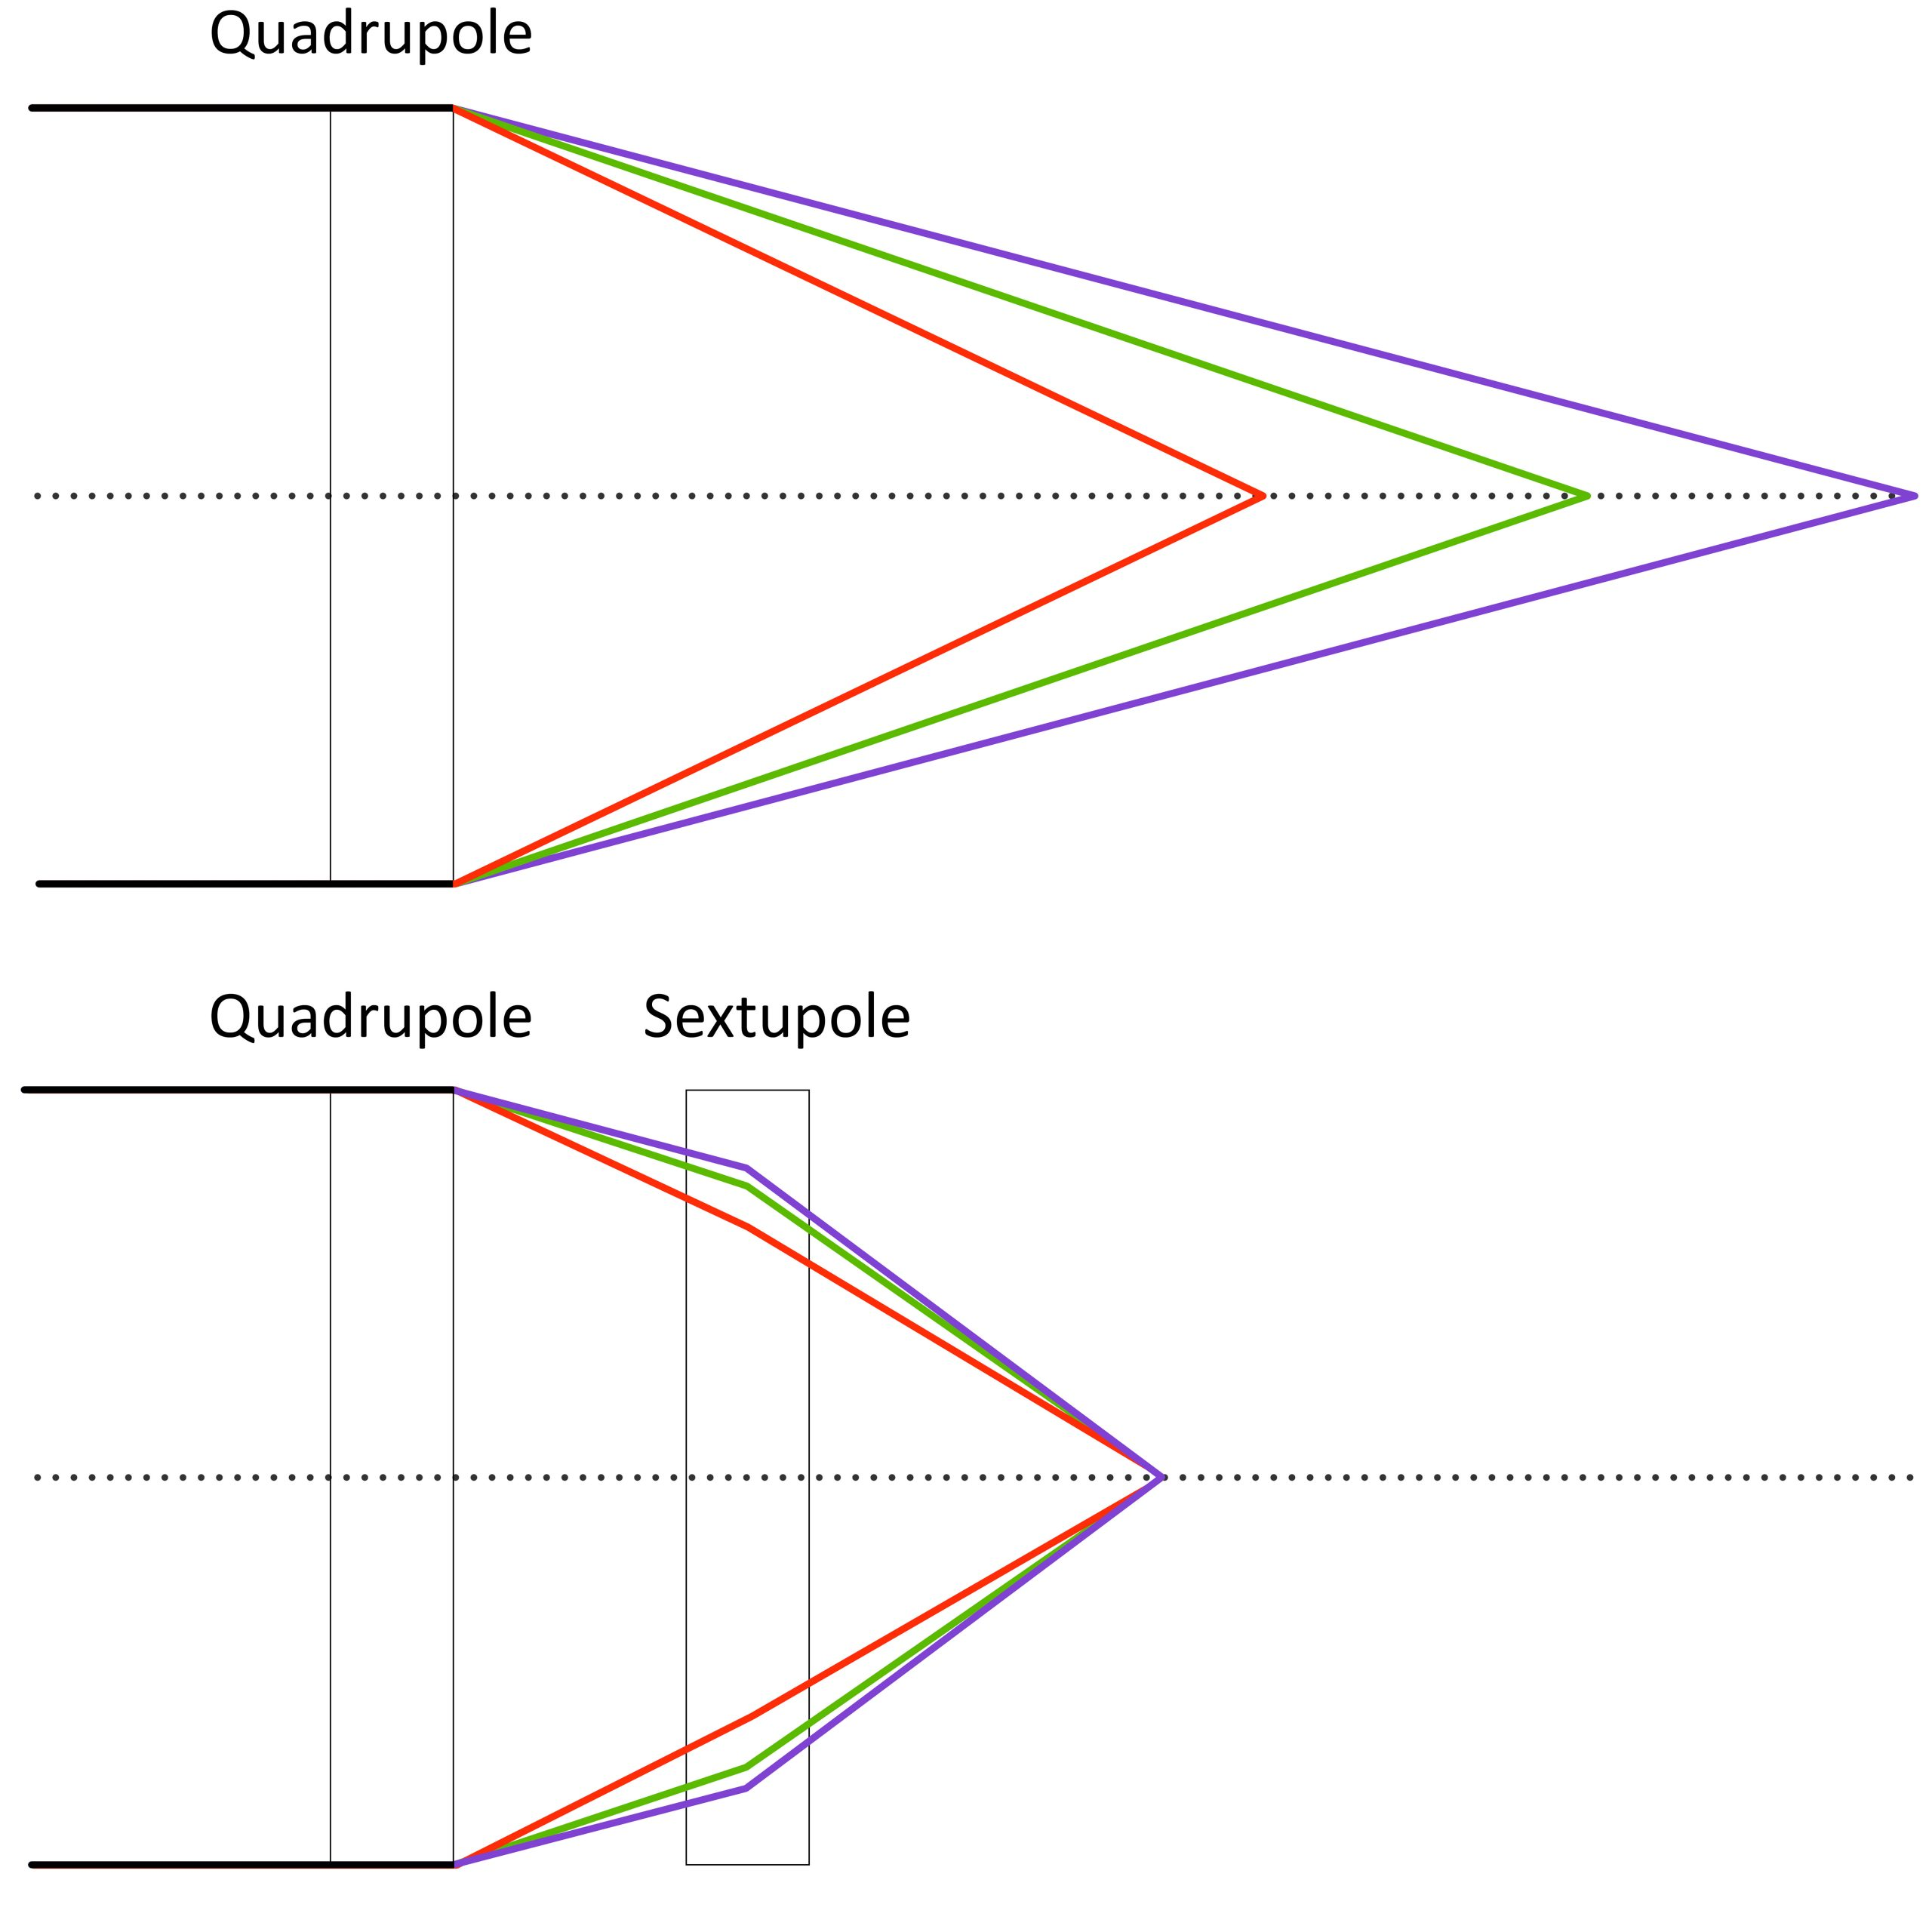 Quadrupole magnets are not able to focus particles with varying energies to a particular point, so scientists use sextupole magnets to correct for this chromatic aberration.